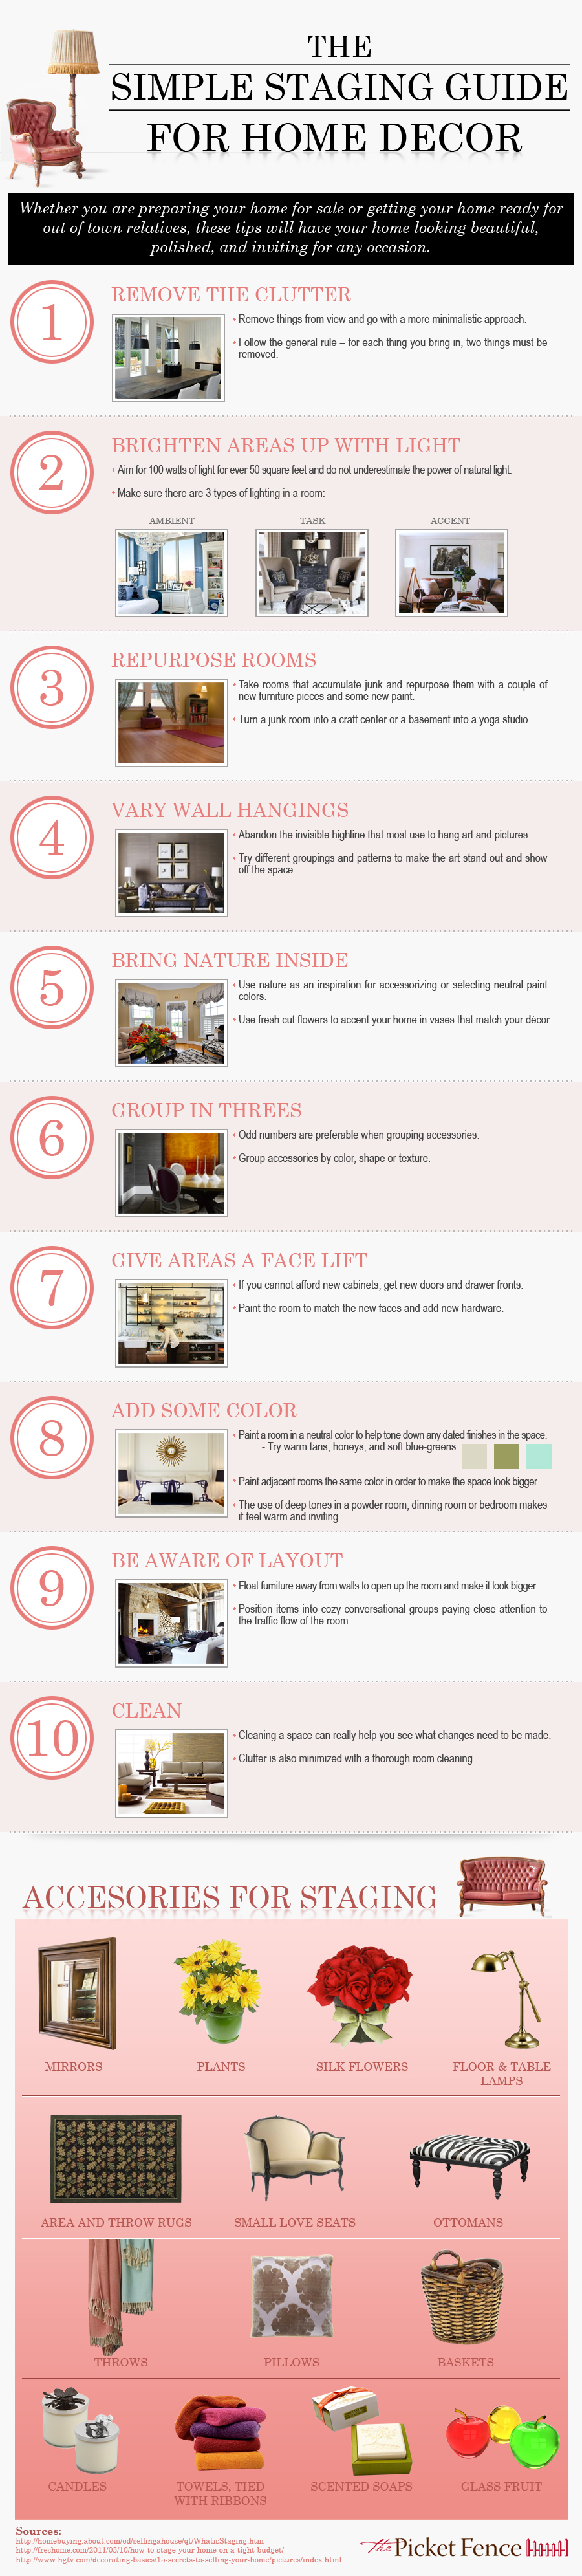 home-staging_infographic_3982